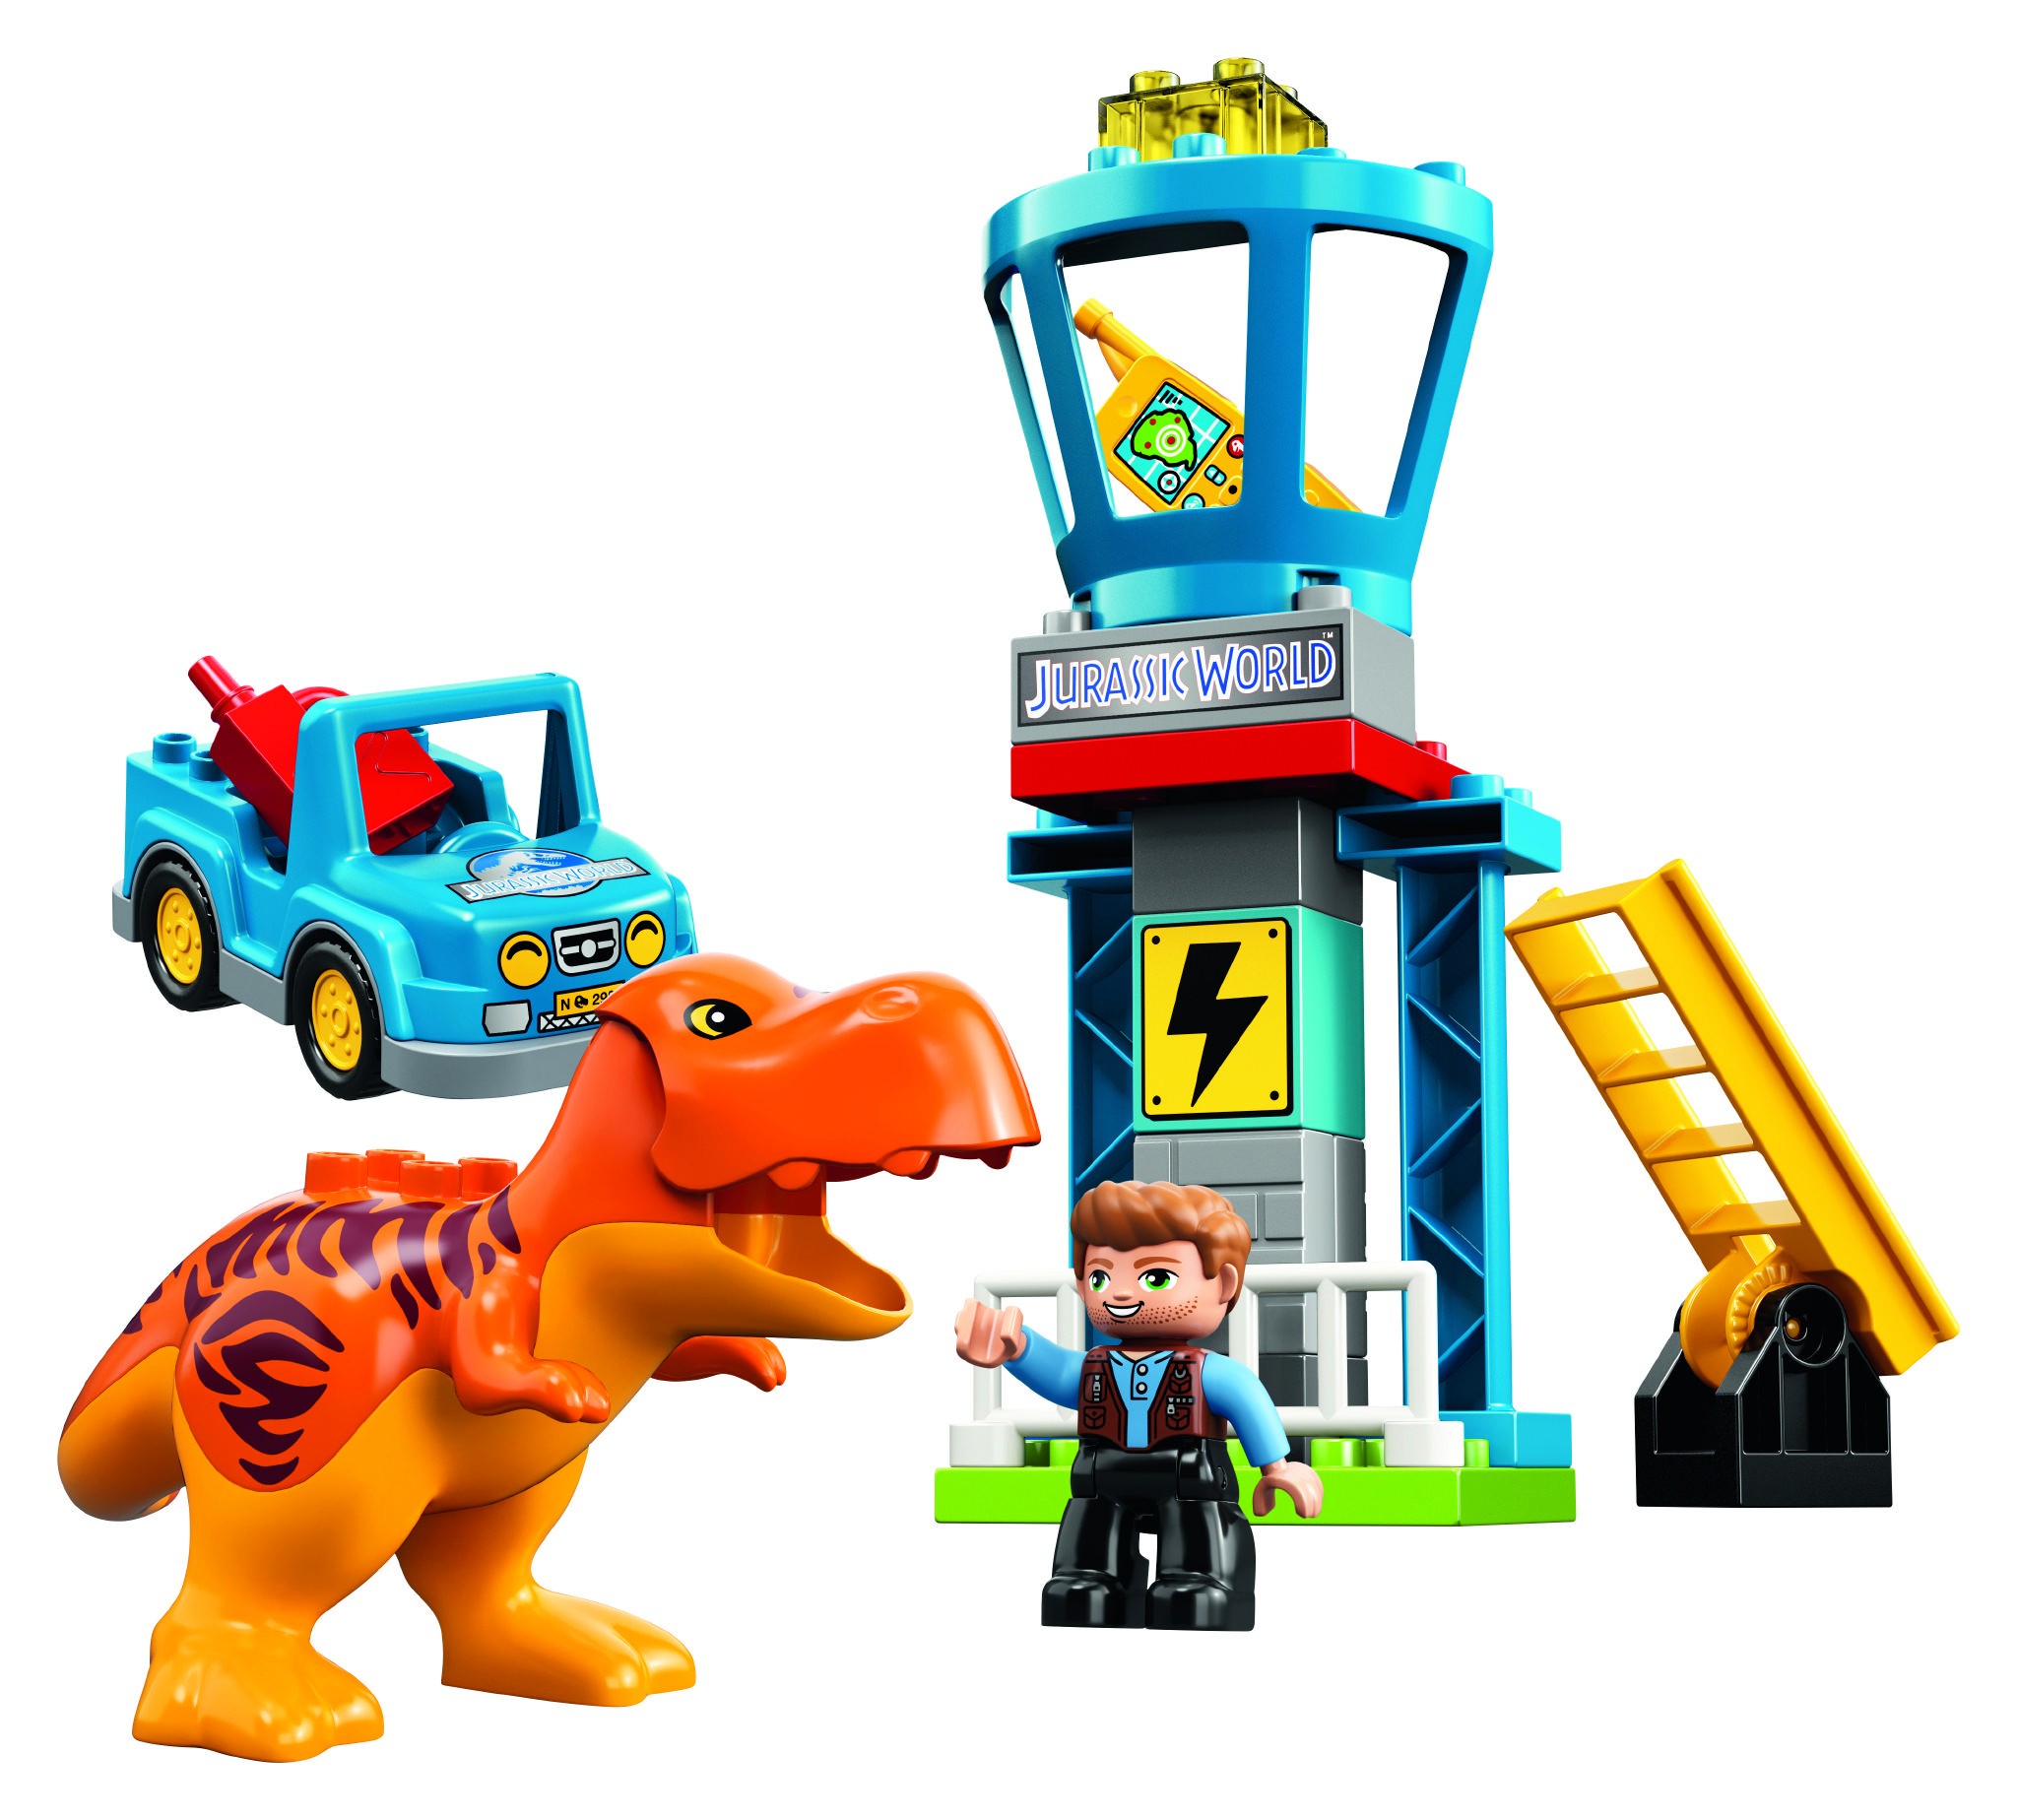 Jurassic World Lego Set Details and Official HD Images ...